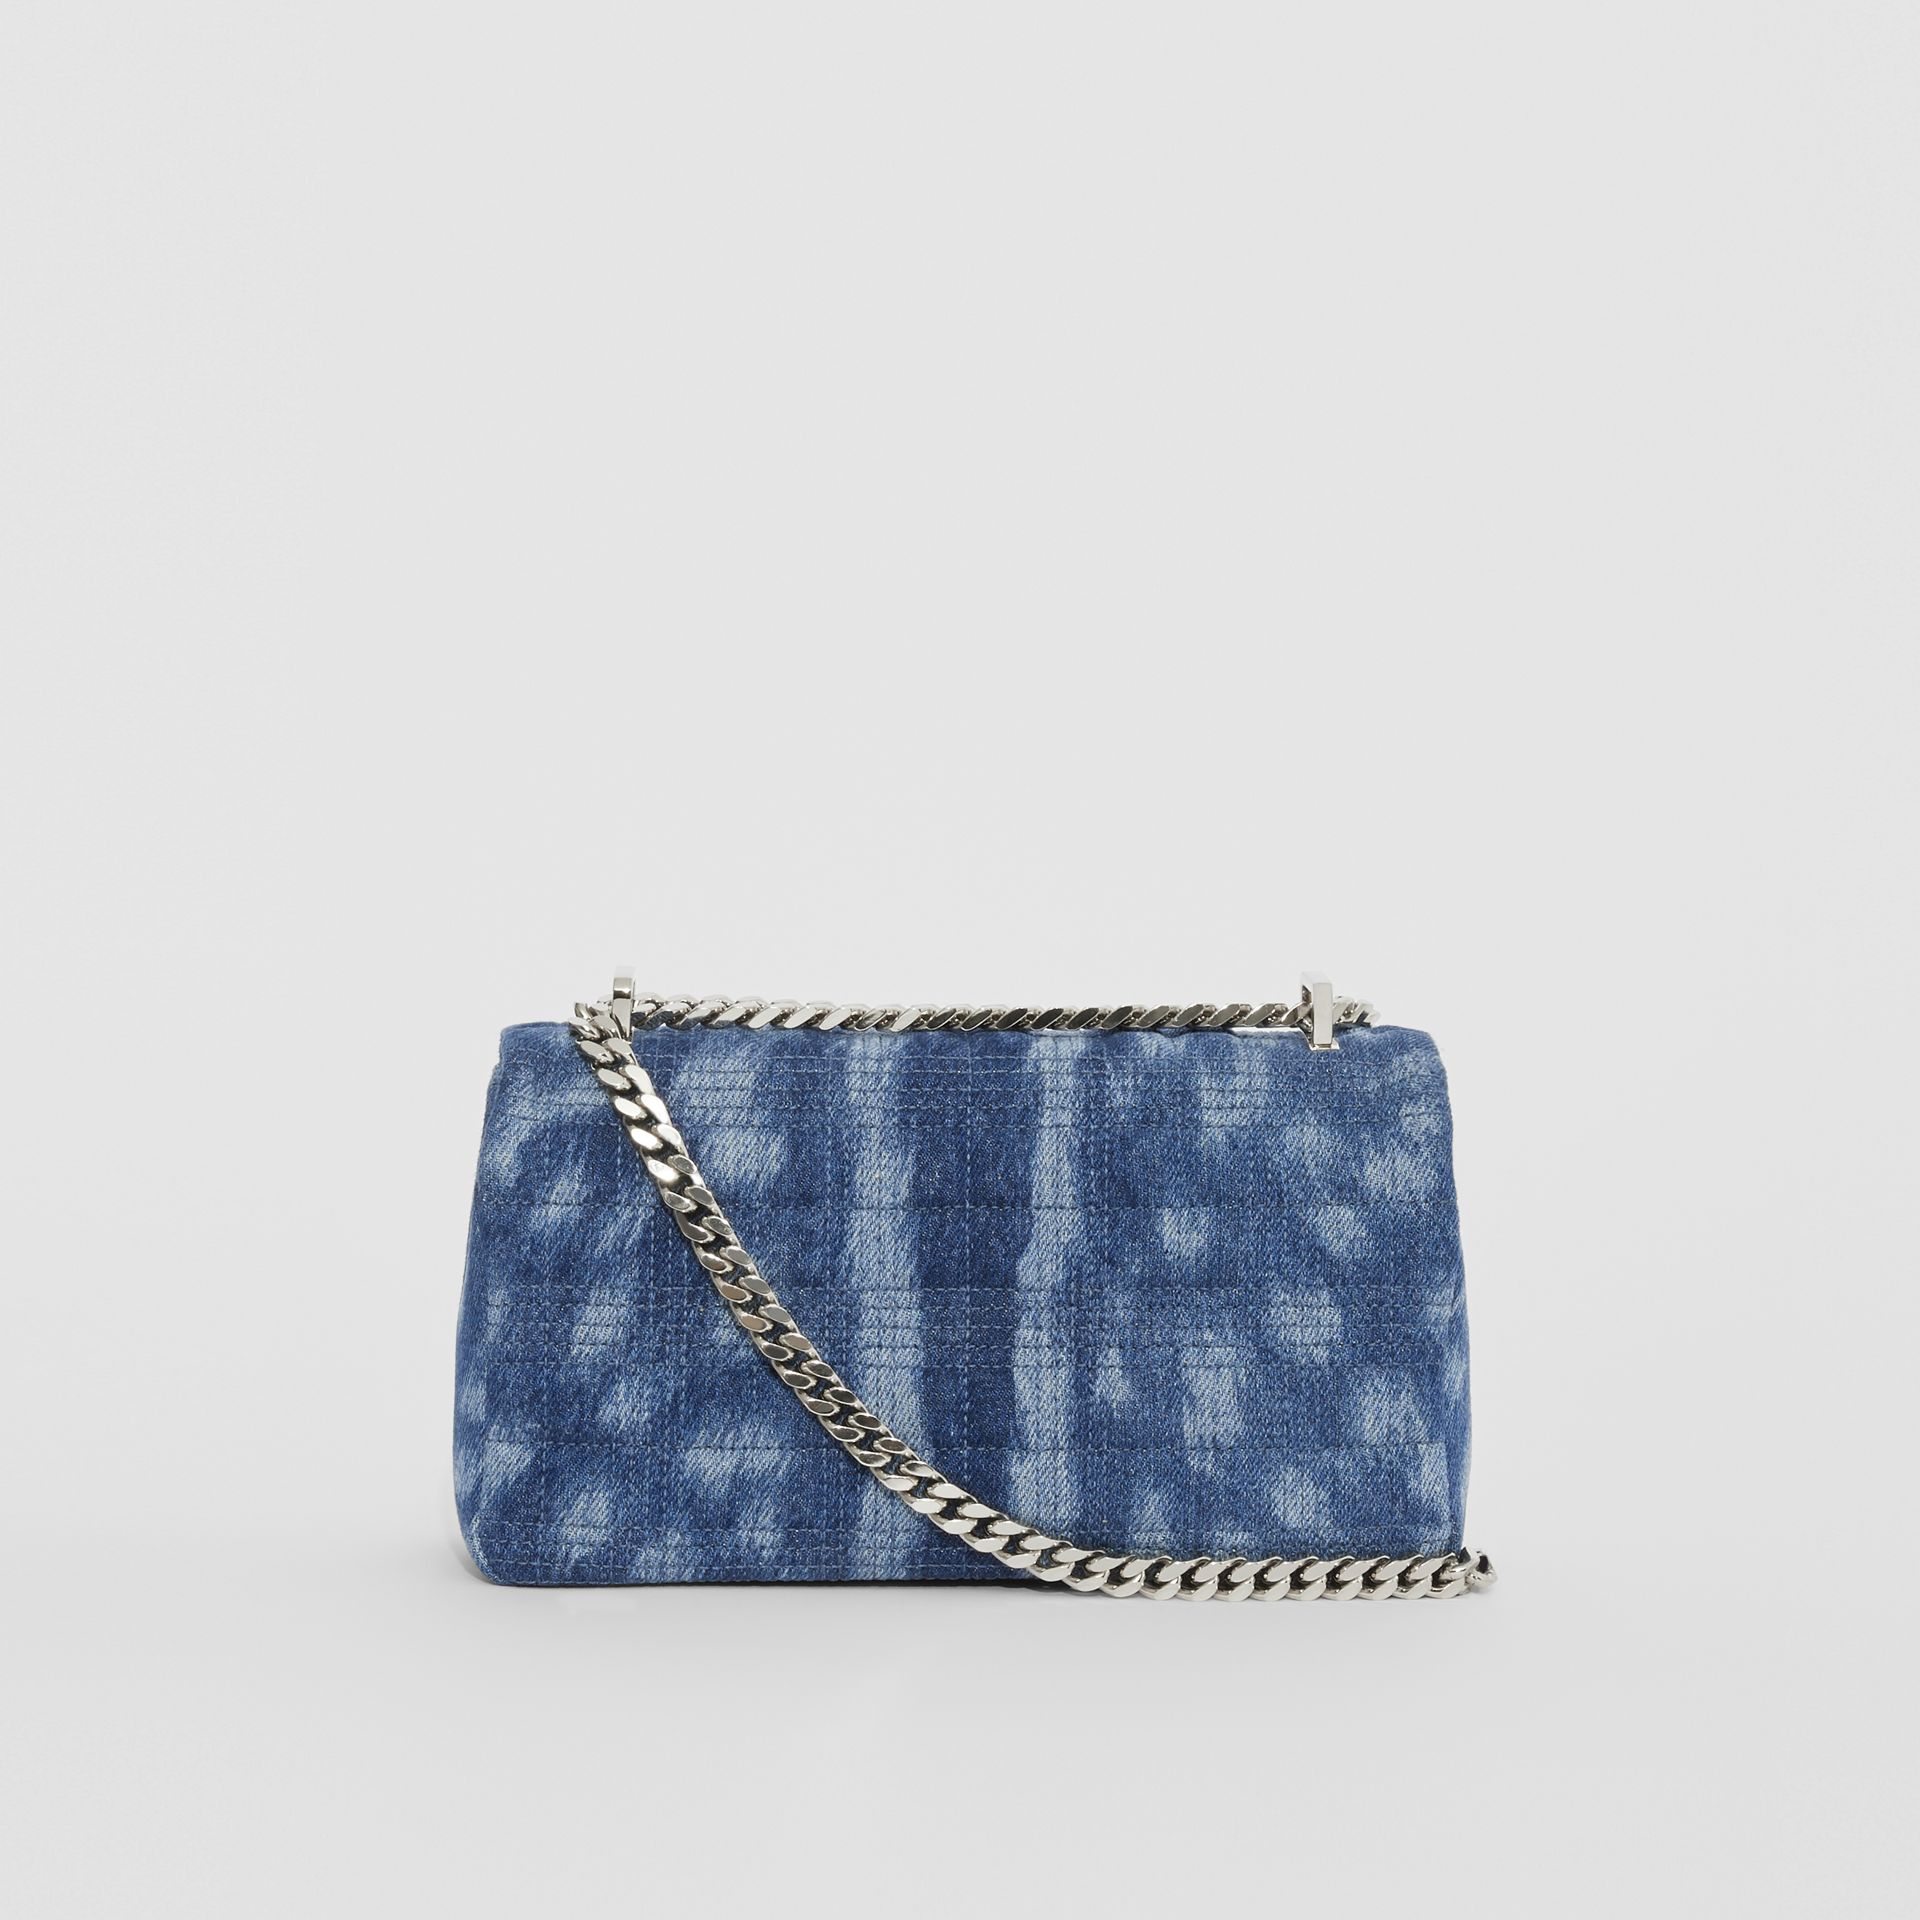 Small Quilted Denim Lola Bag in Blue - Women | Burberry - gallery image 7